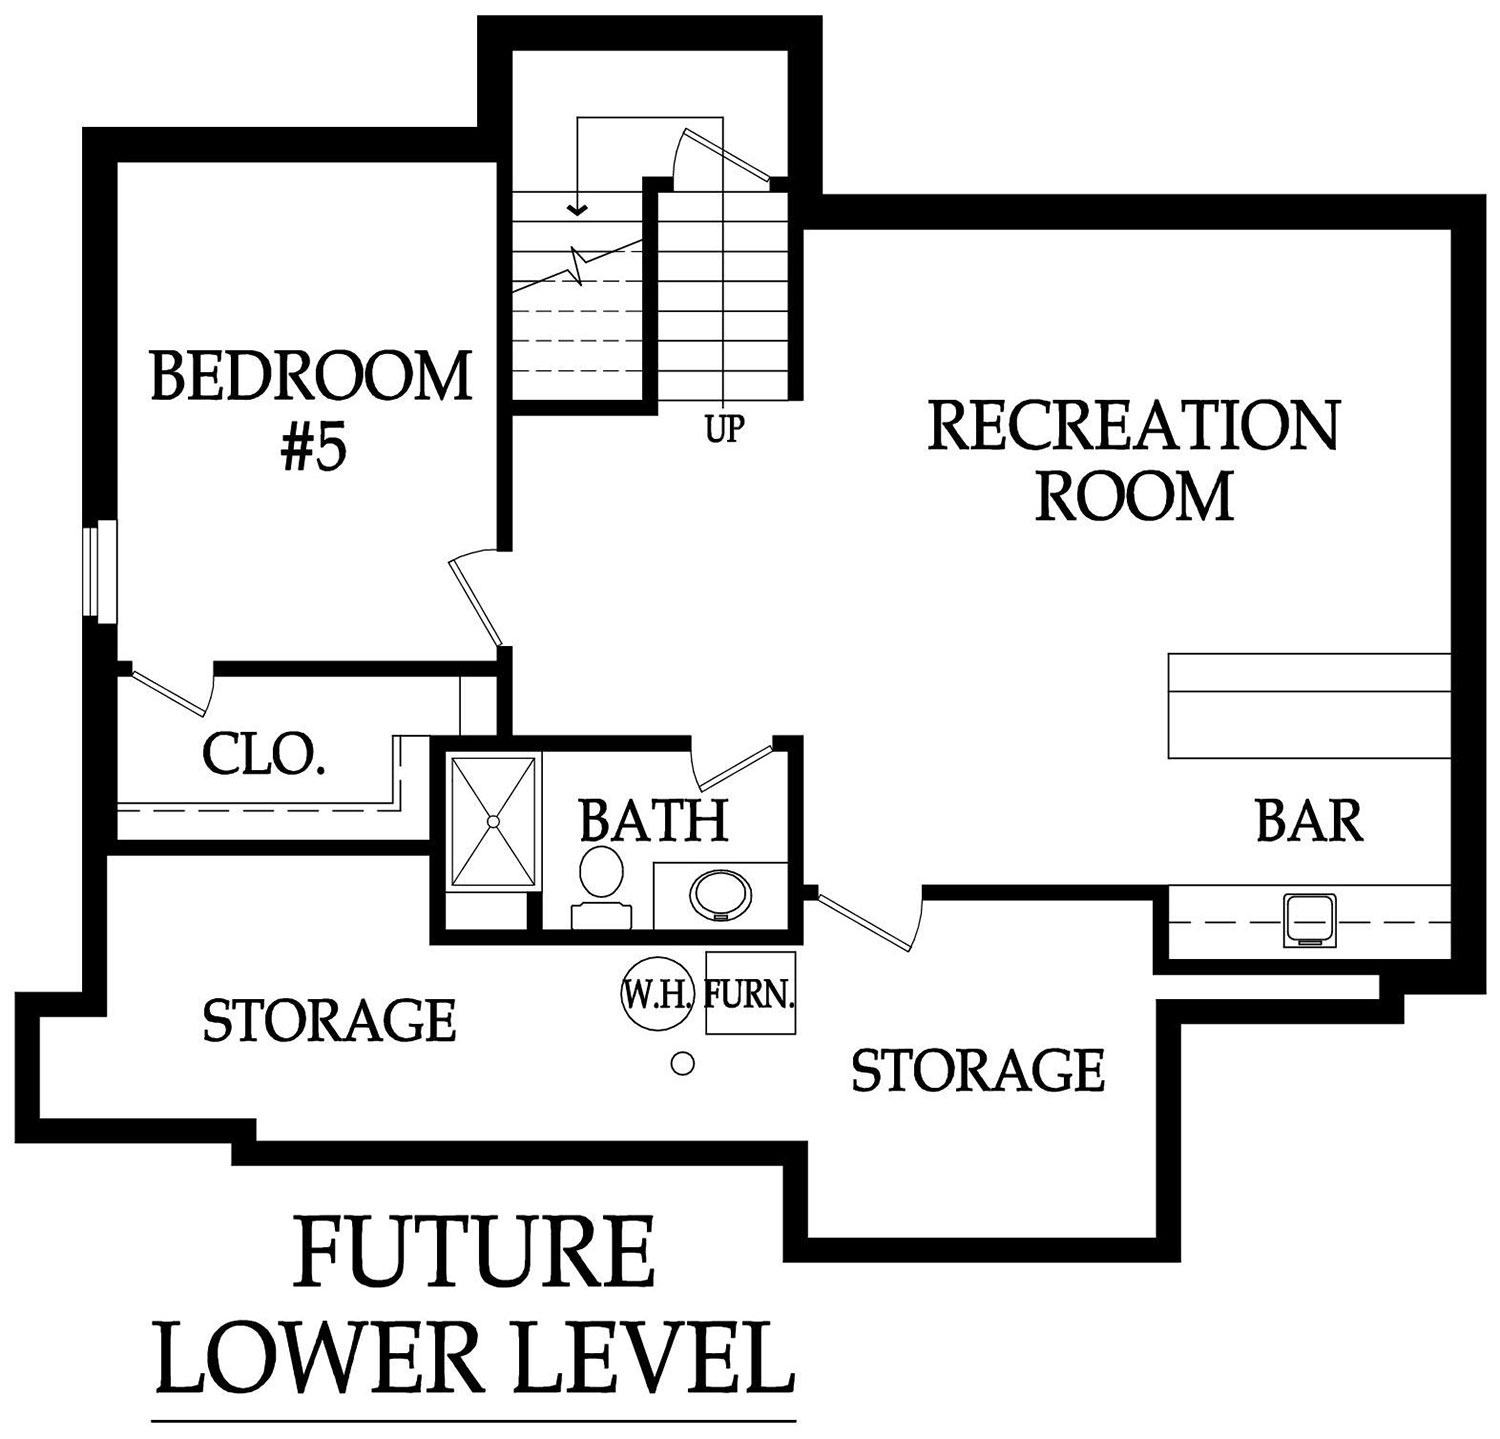 Weston III future basement layout rendering